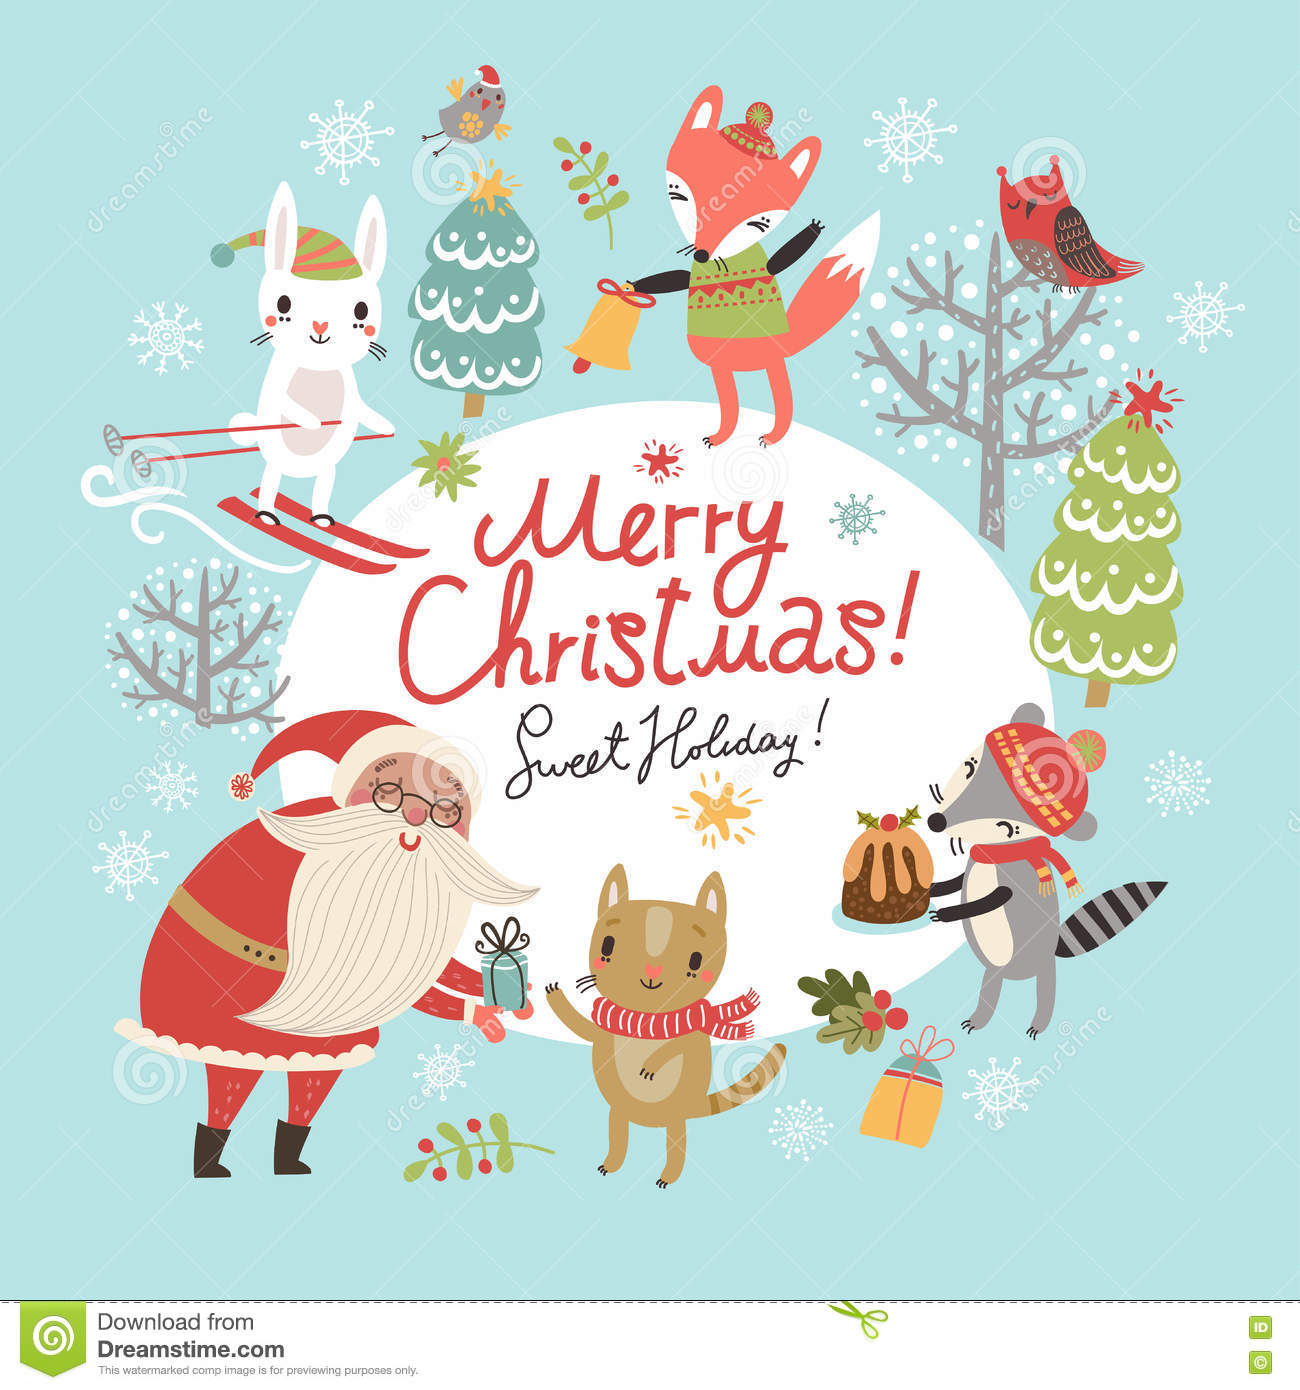 Christmas card with santa and cute characters stock vector christmas card with santa and cute characters kristyandbryce Gallery